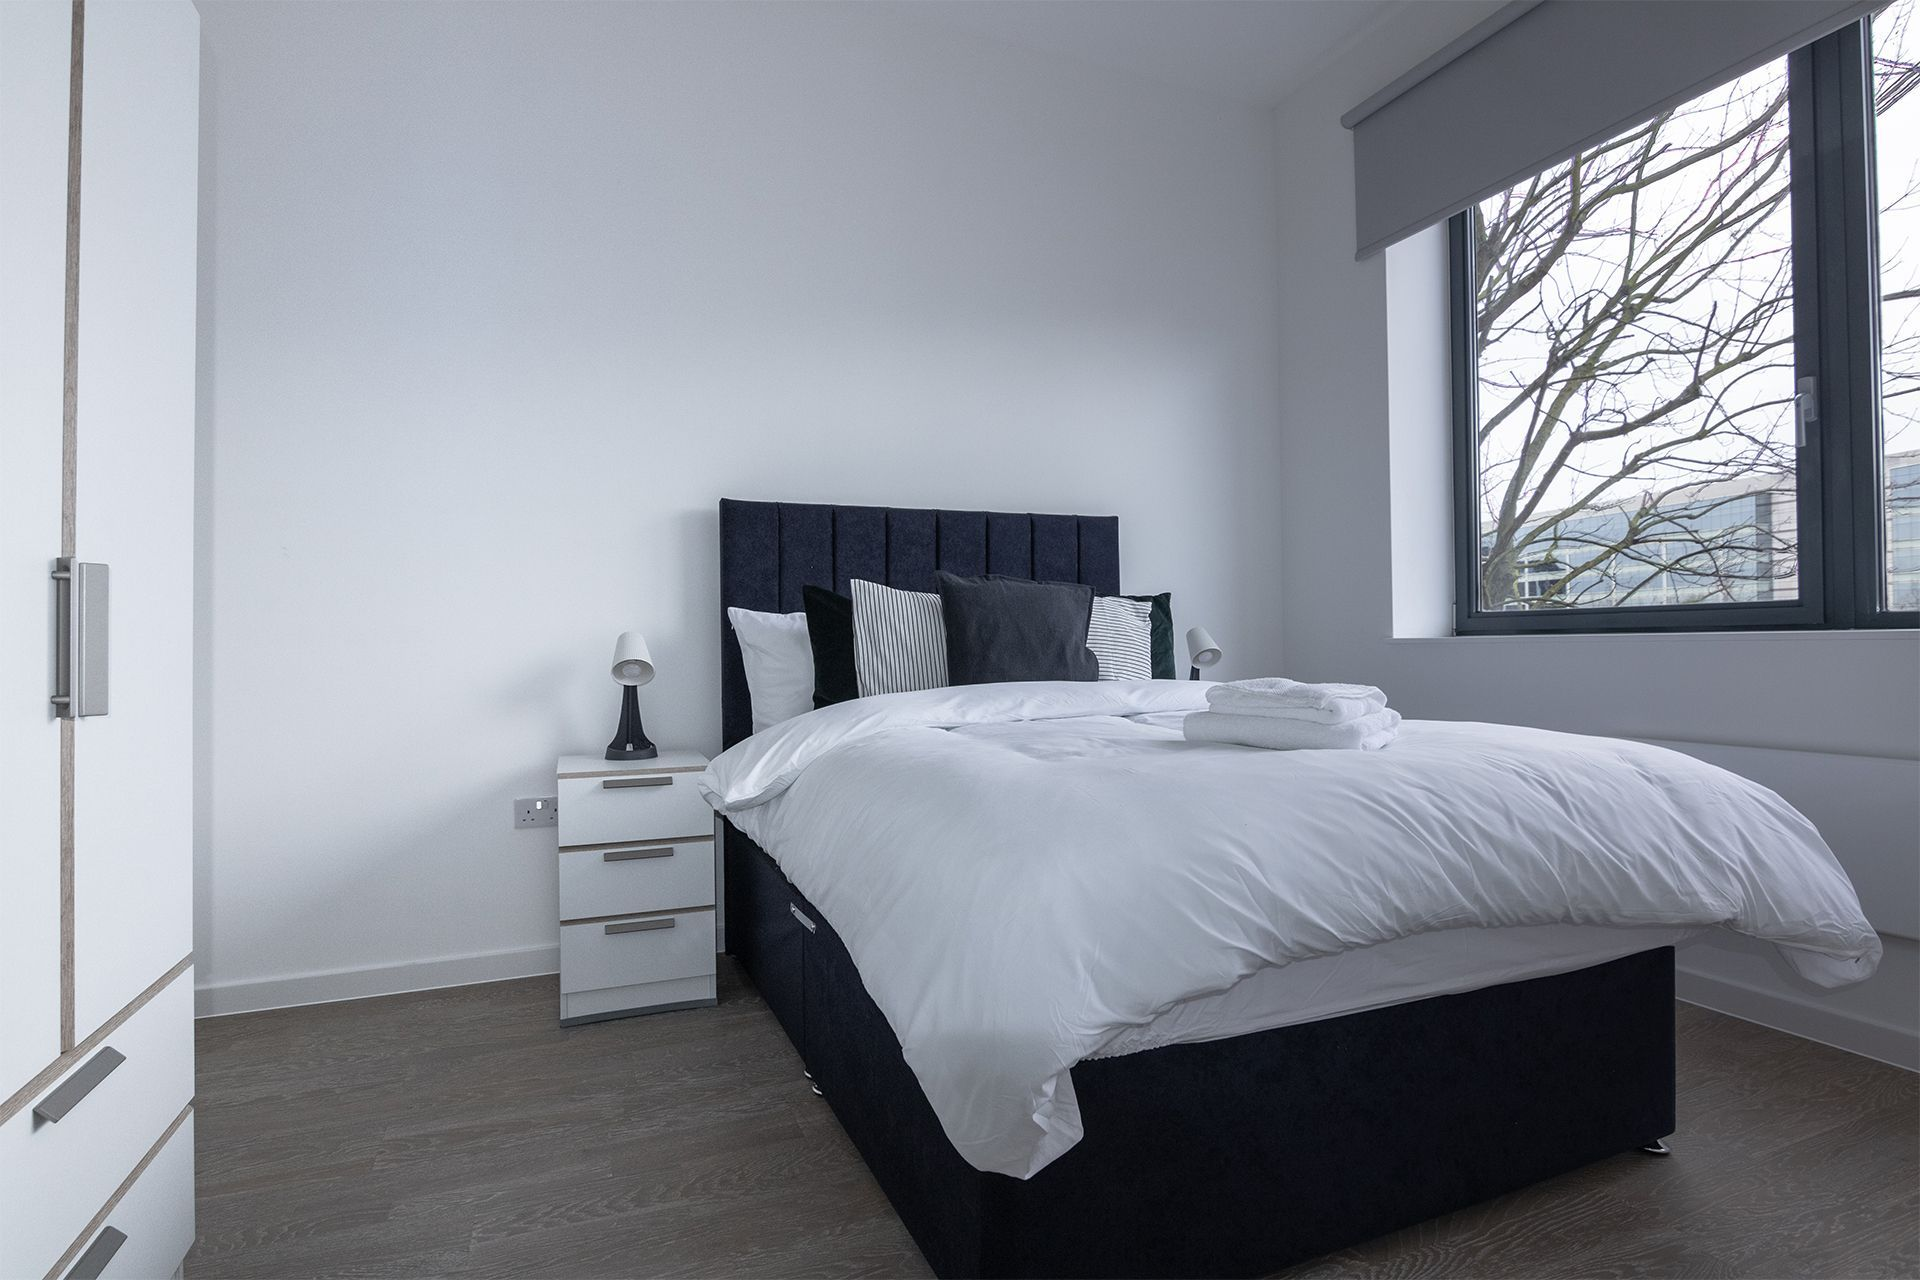 1 Bedroom apartment to rent in London VIL-SA-0035